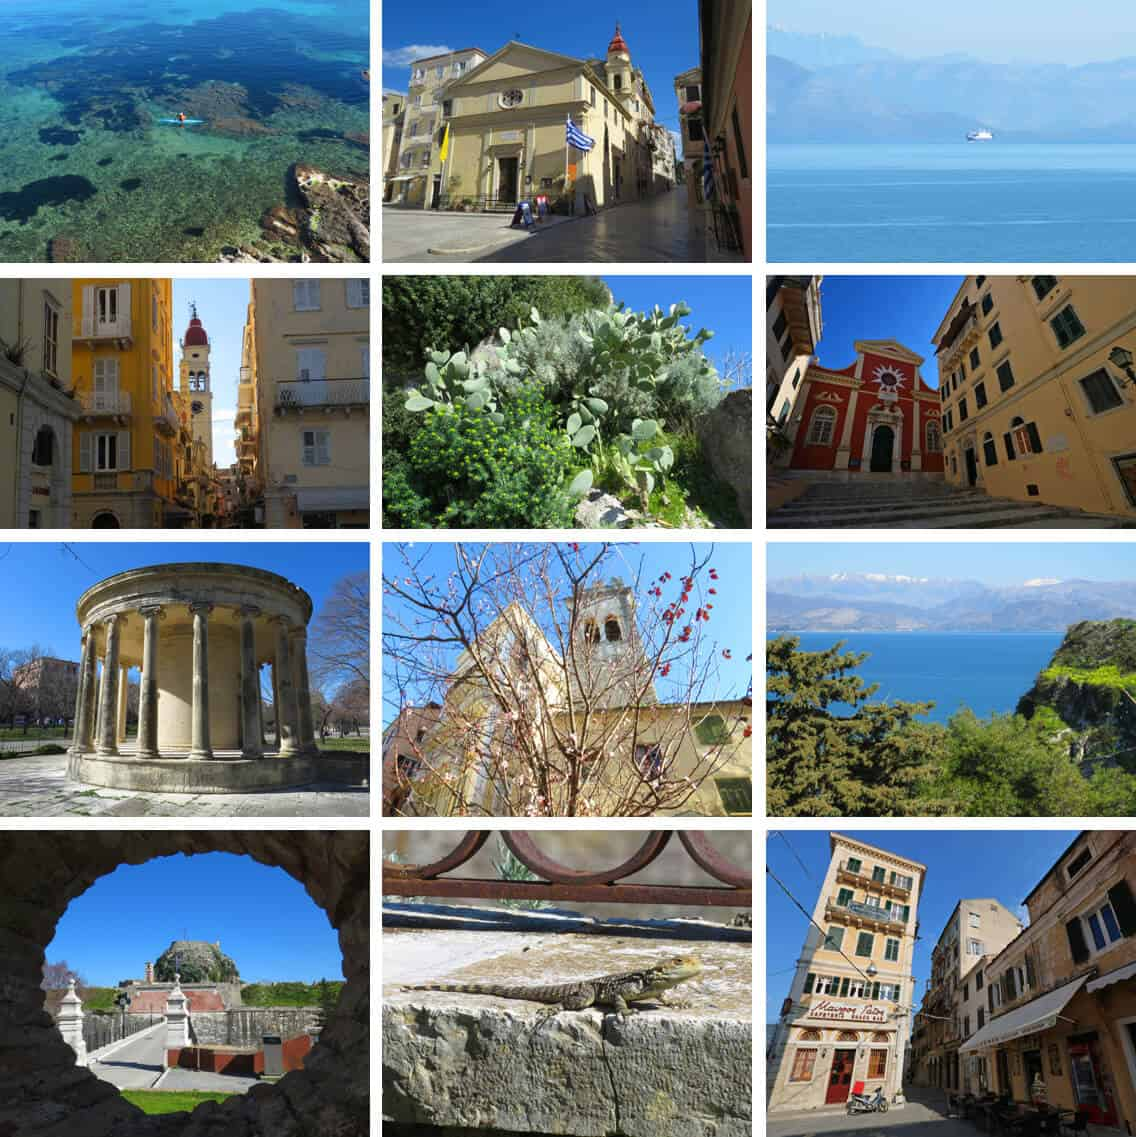 images of Corfu town, Greece